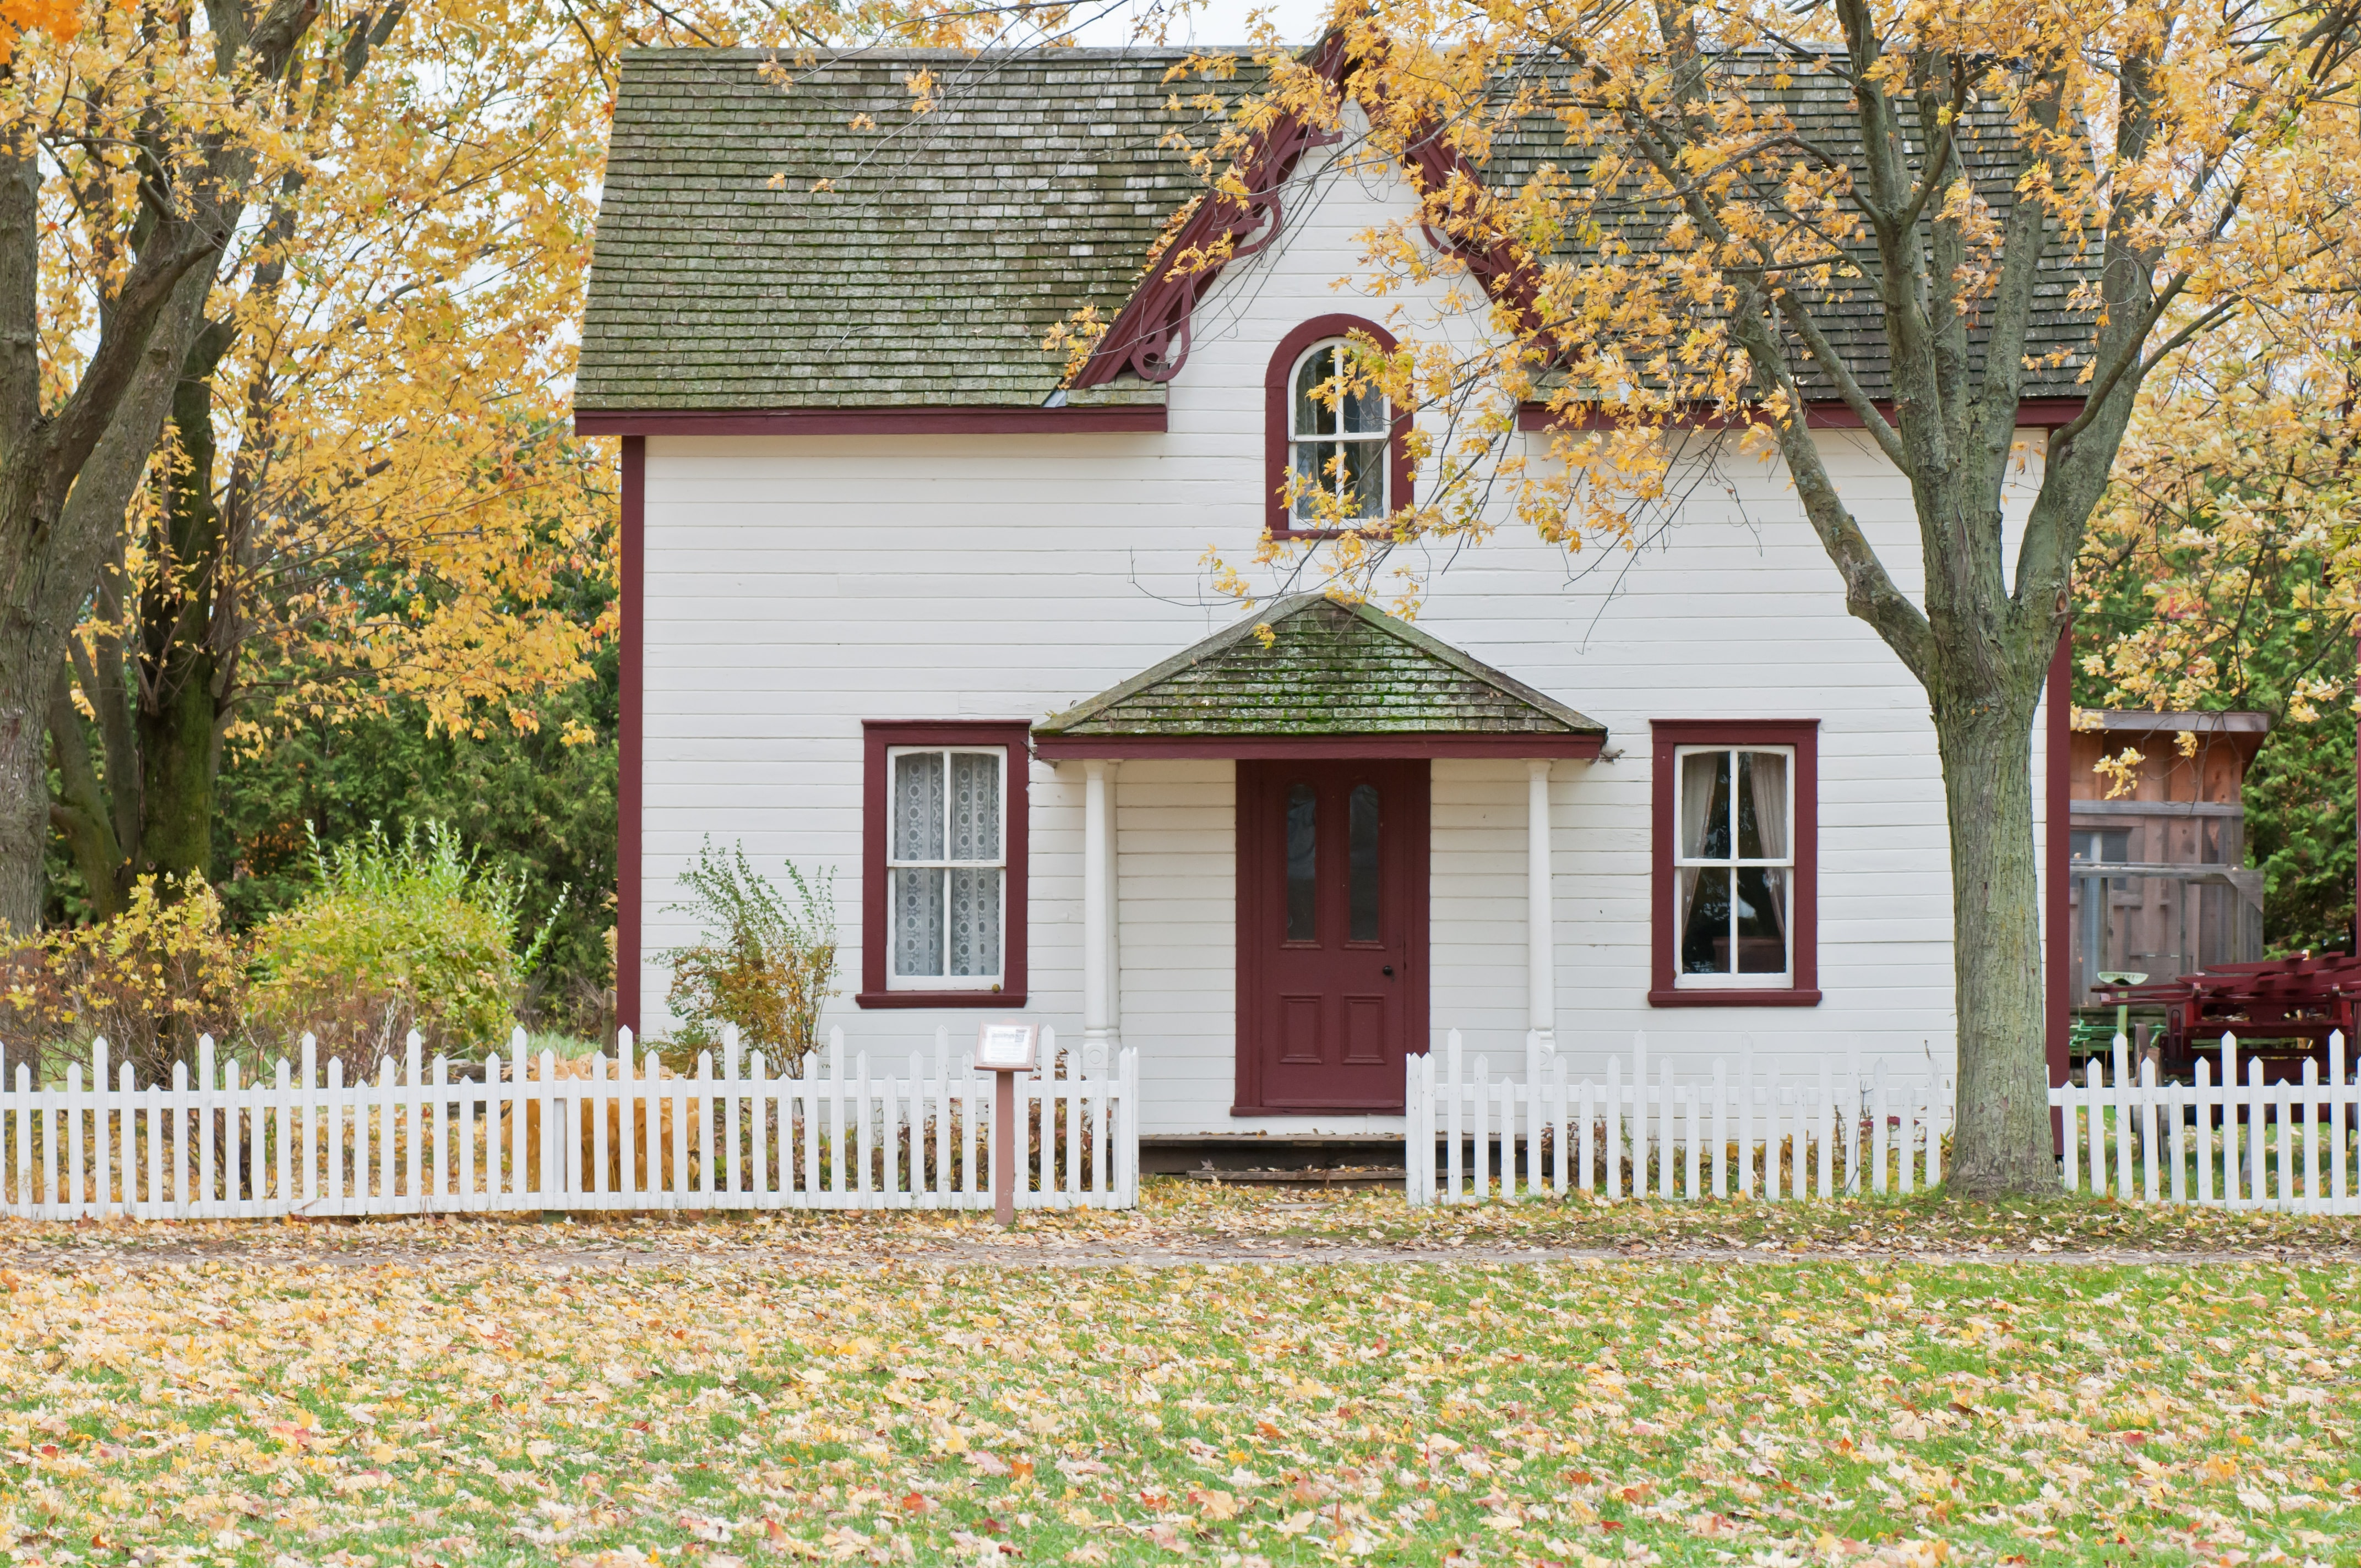 house photos free download